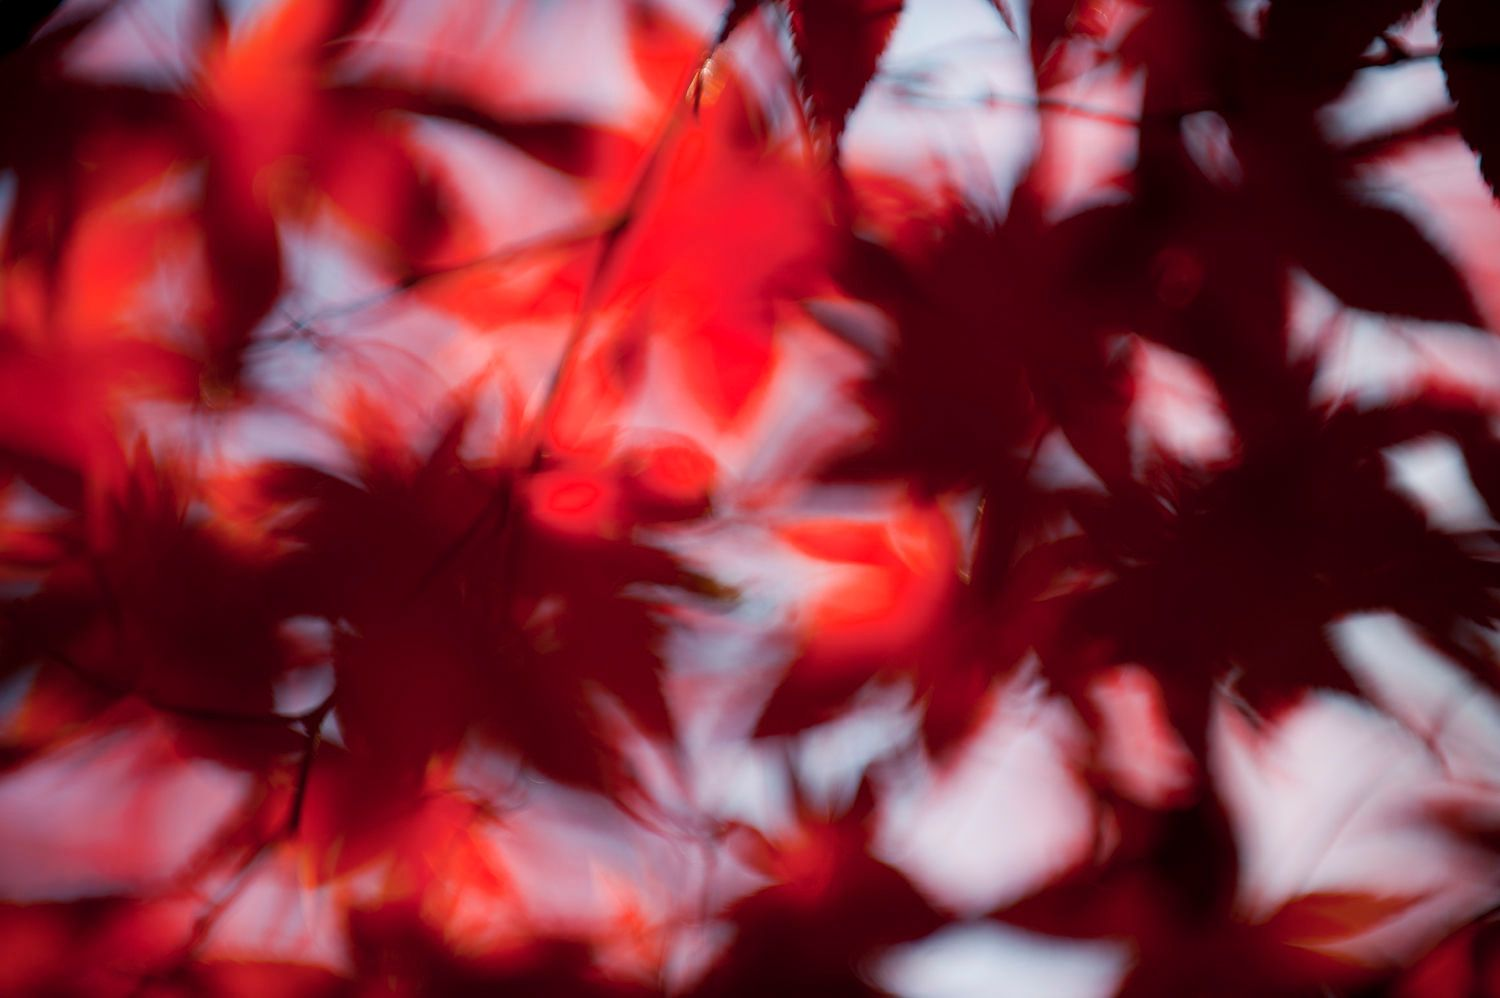 Abstract and Blurred Red Maple Leaves